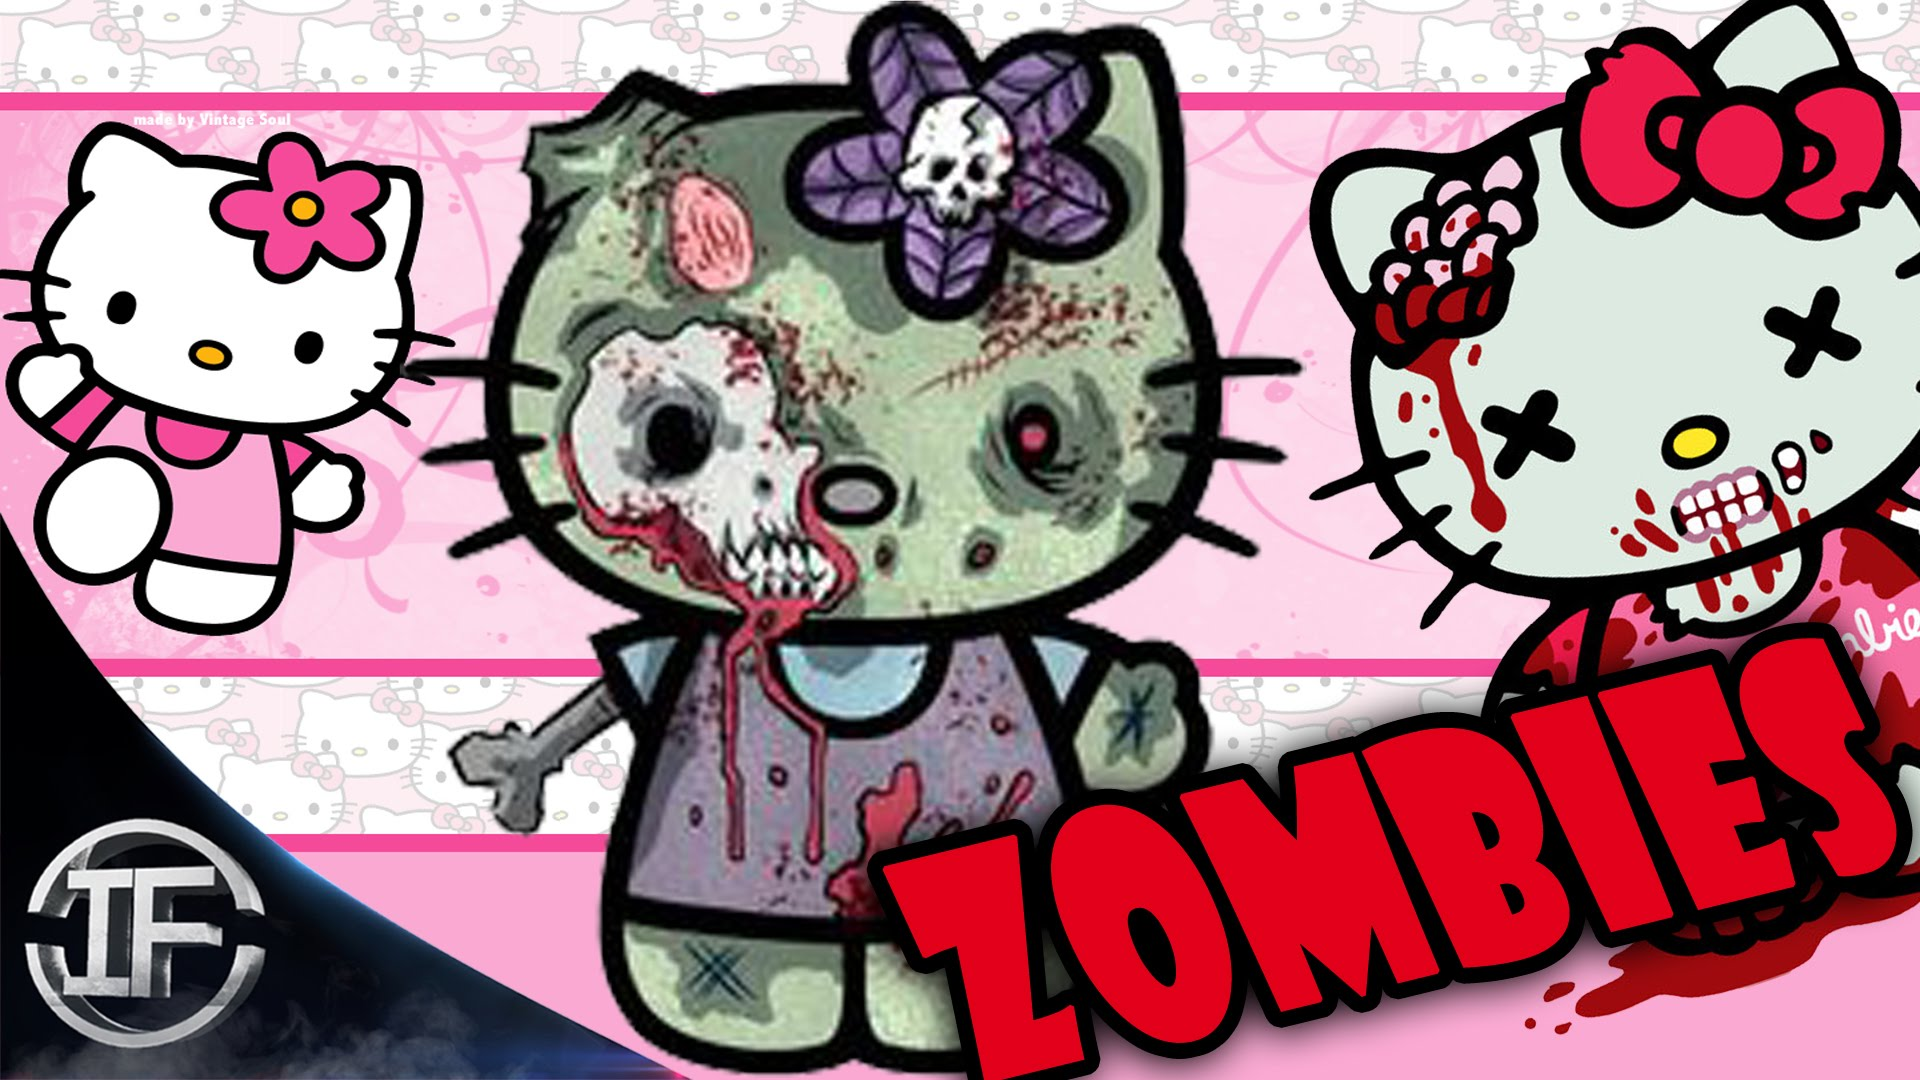 Christmas Zombie Wallpaper.A Zombie Christmas The Undead Popularity Grows And Has